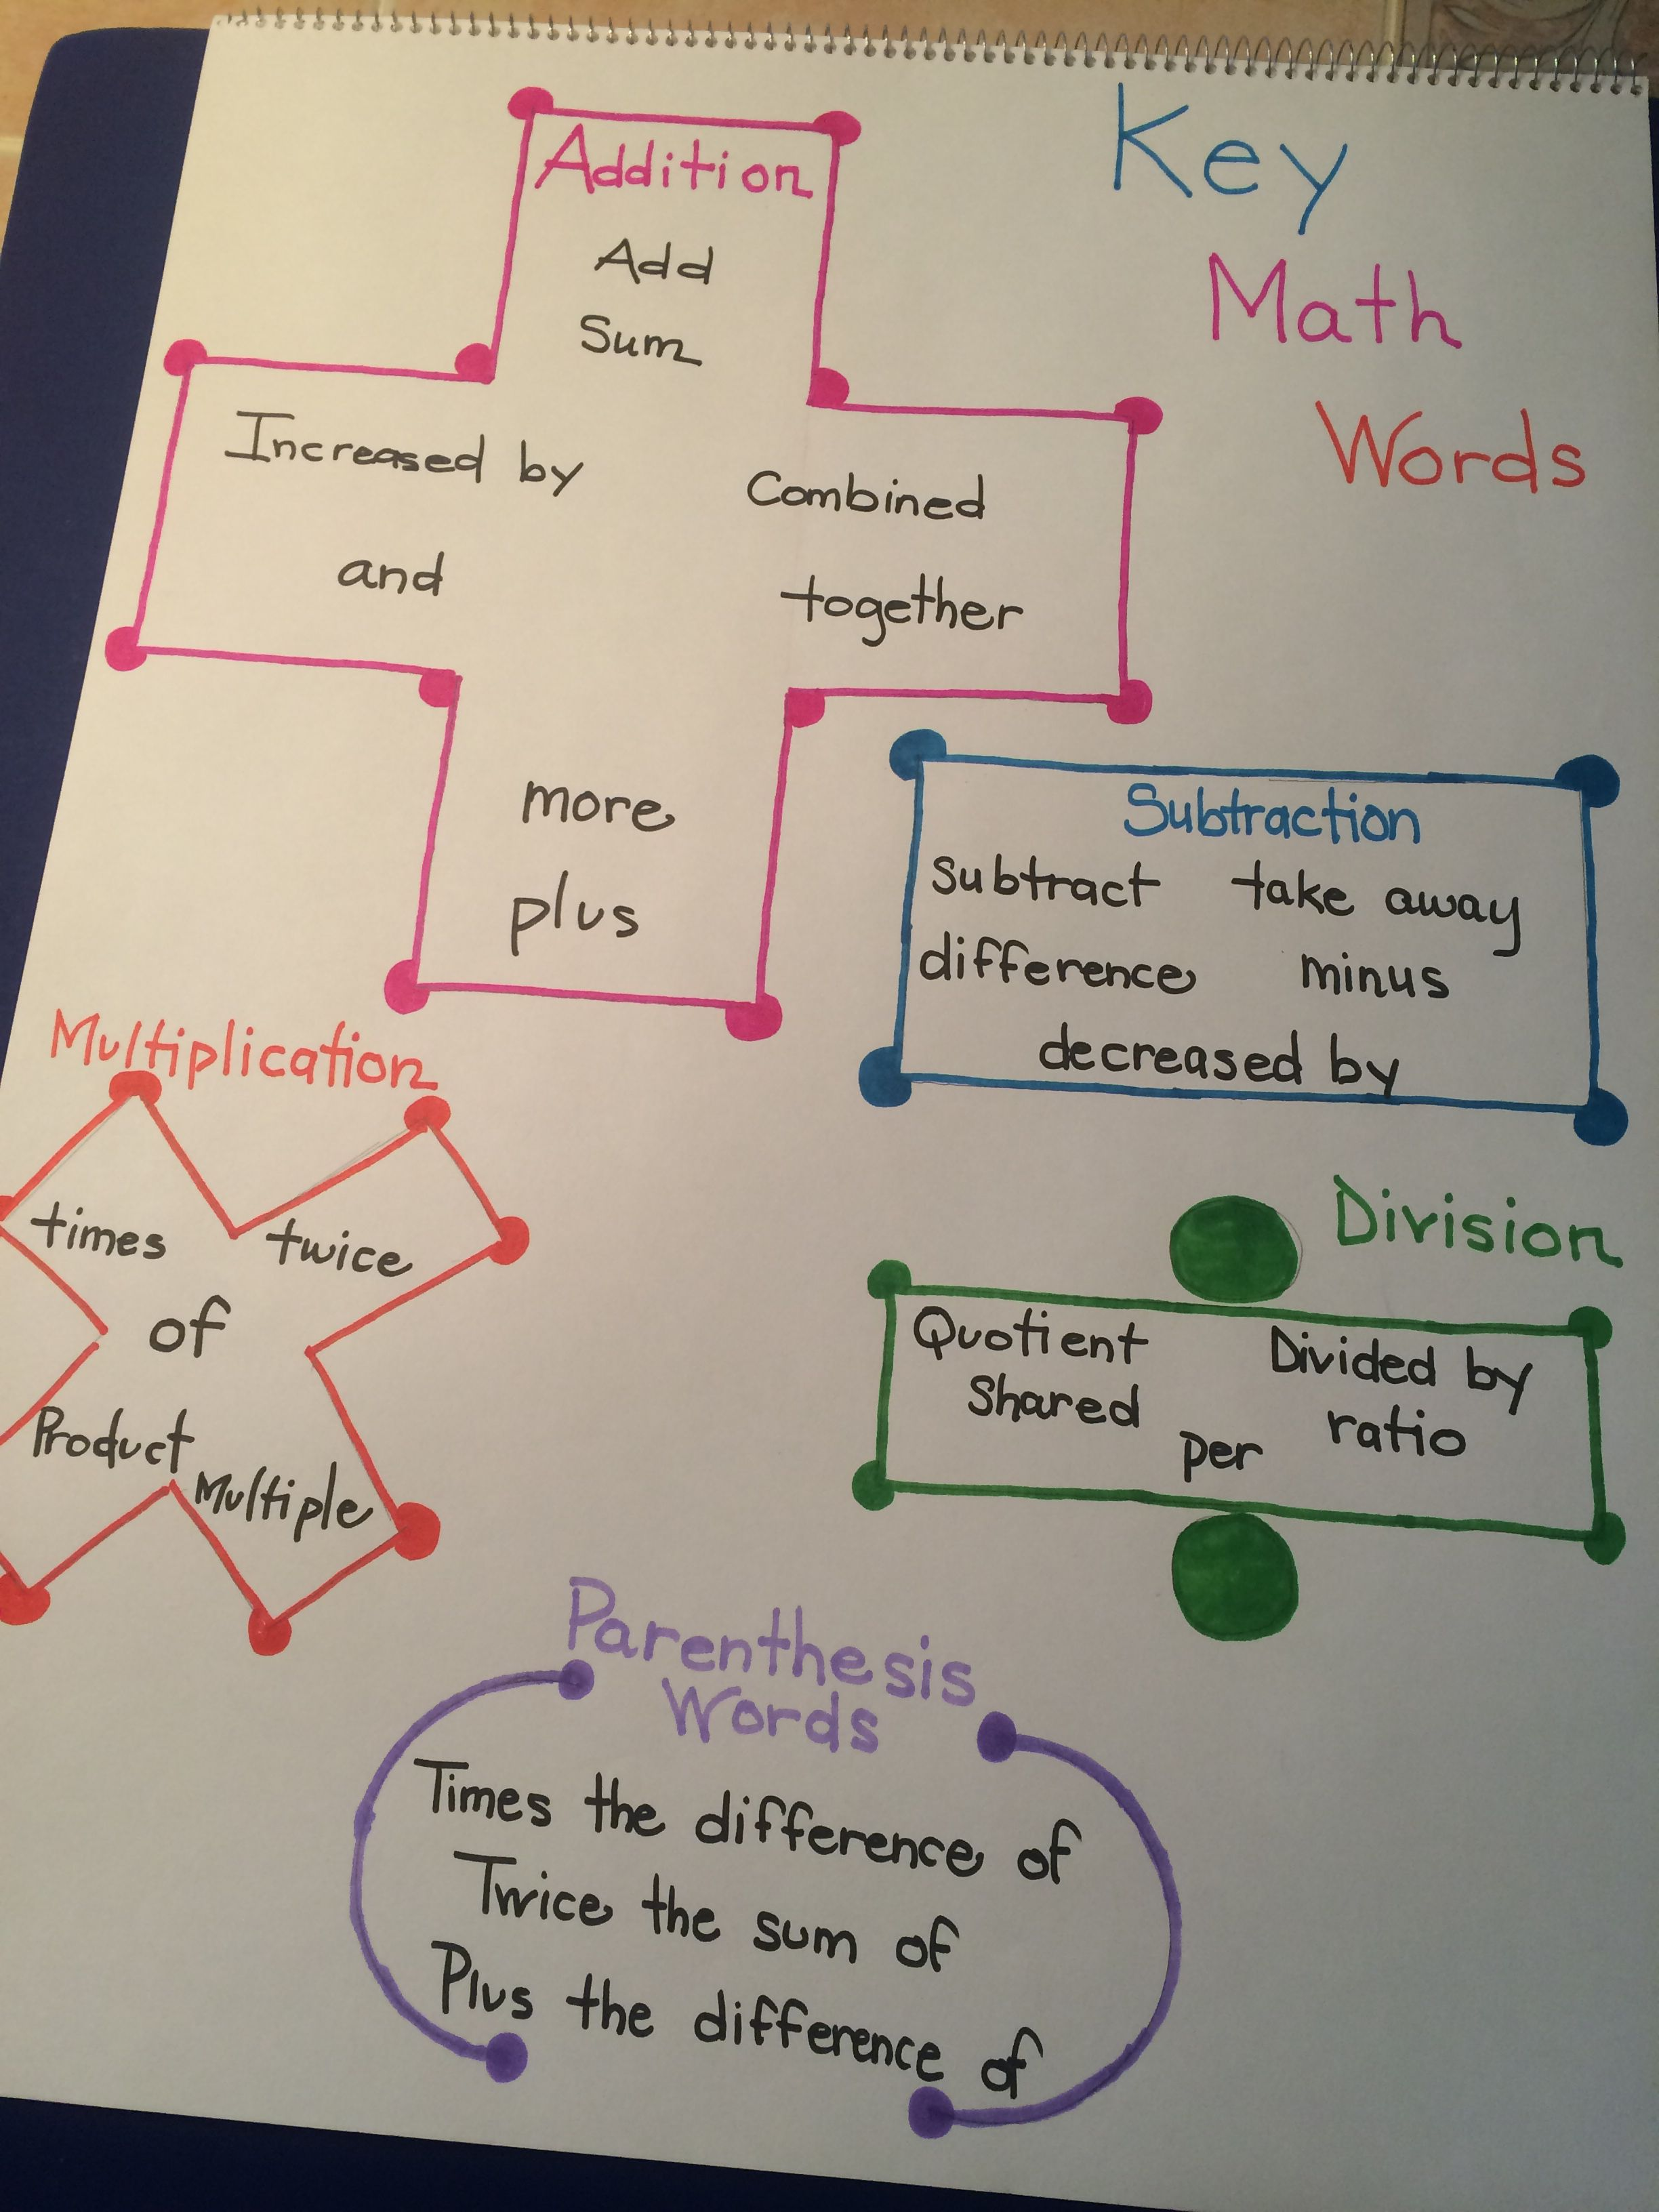 Key Math Words Add Subtract Multiply Or Divide That